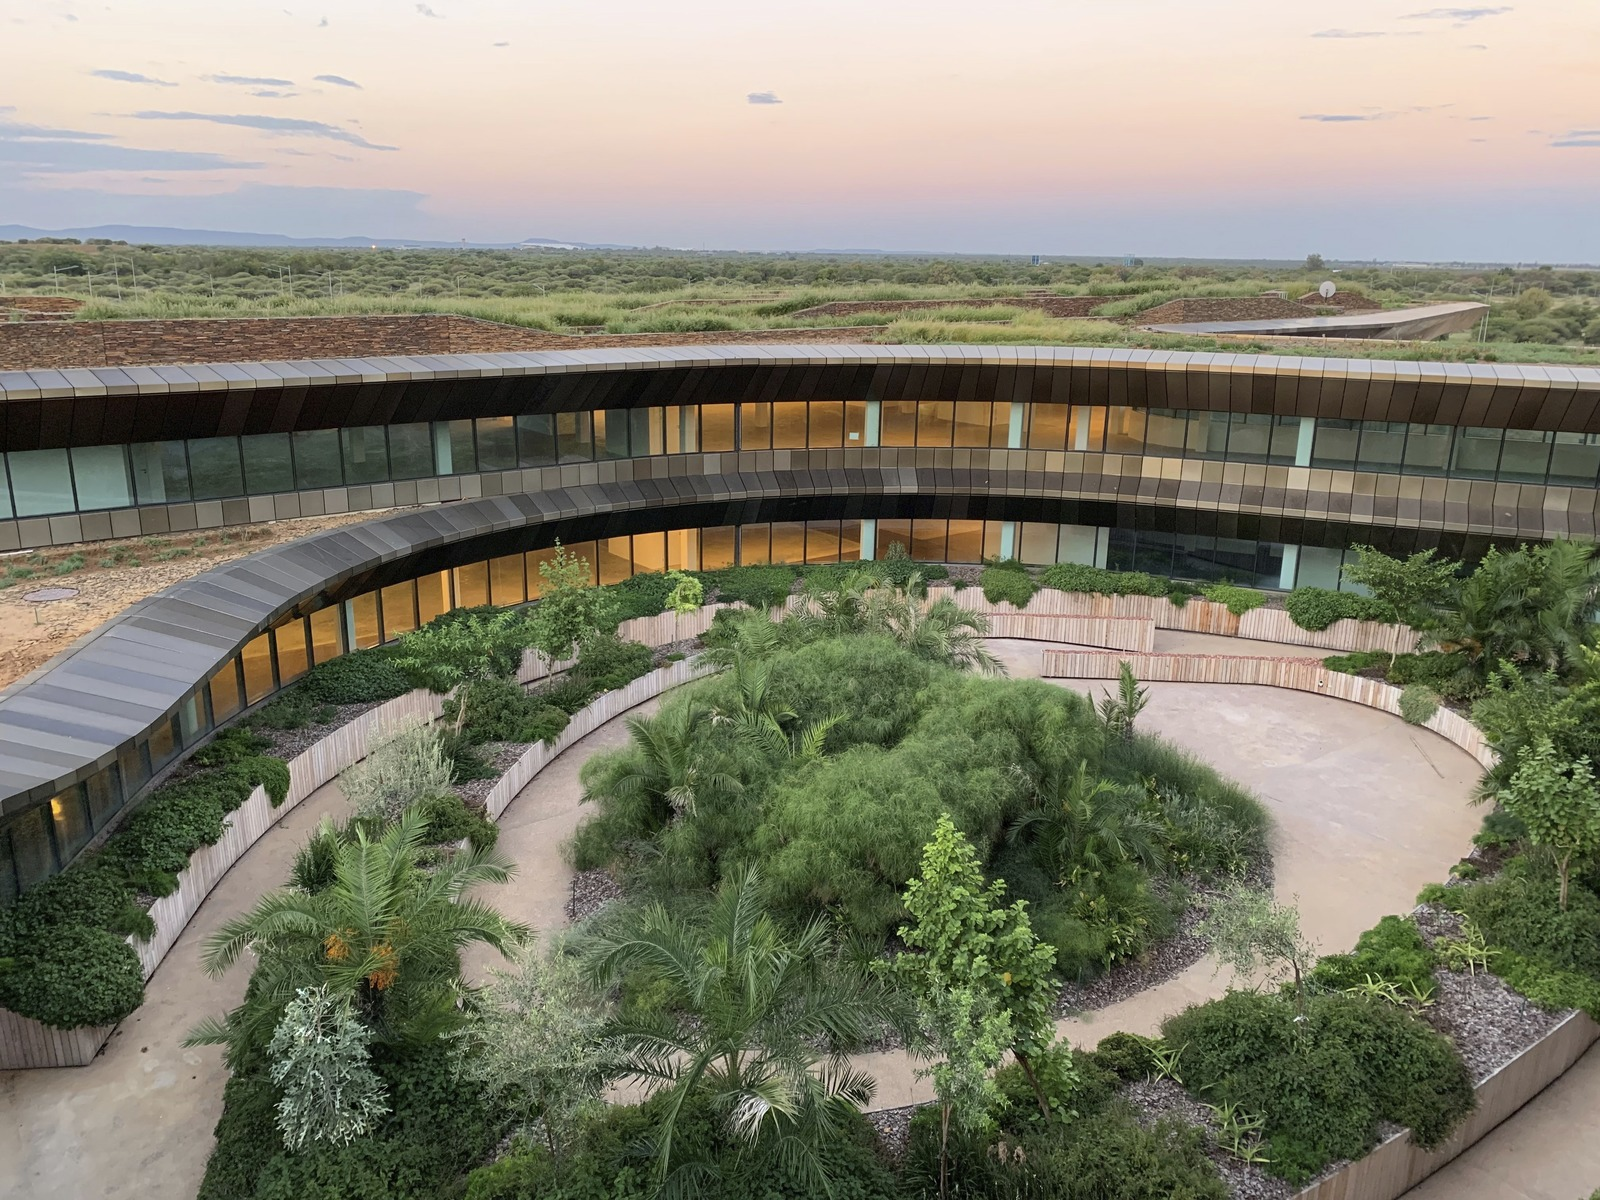 The Icon Building, located outside Botswana's capital city of Gabarone, boasts Africa's largest green roof. It's designed to be the anchor for a campus of the state-run Botswana Innovation Hub.